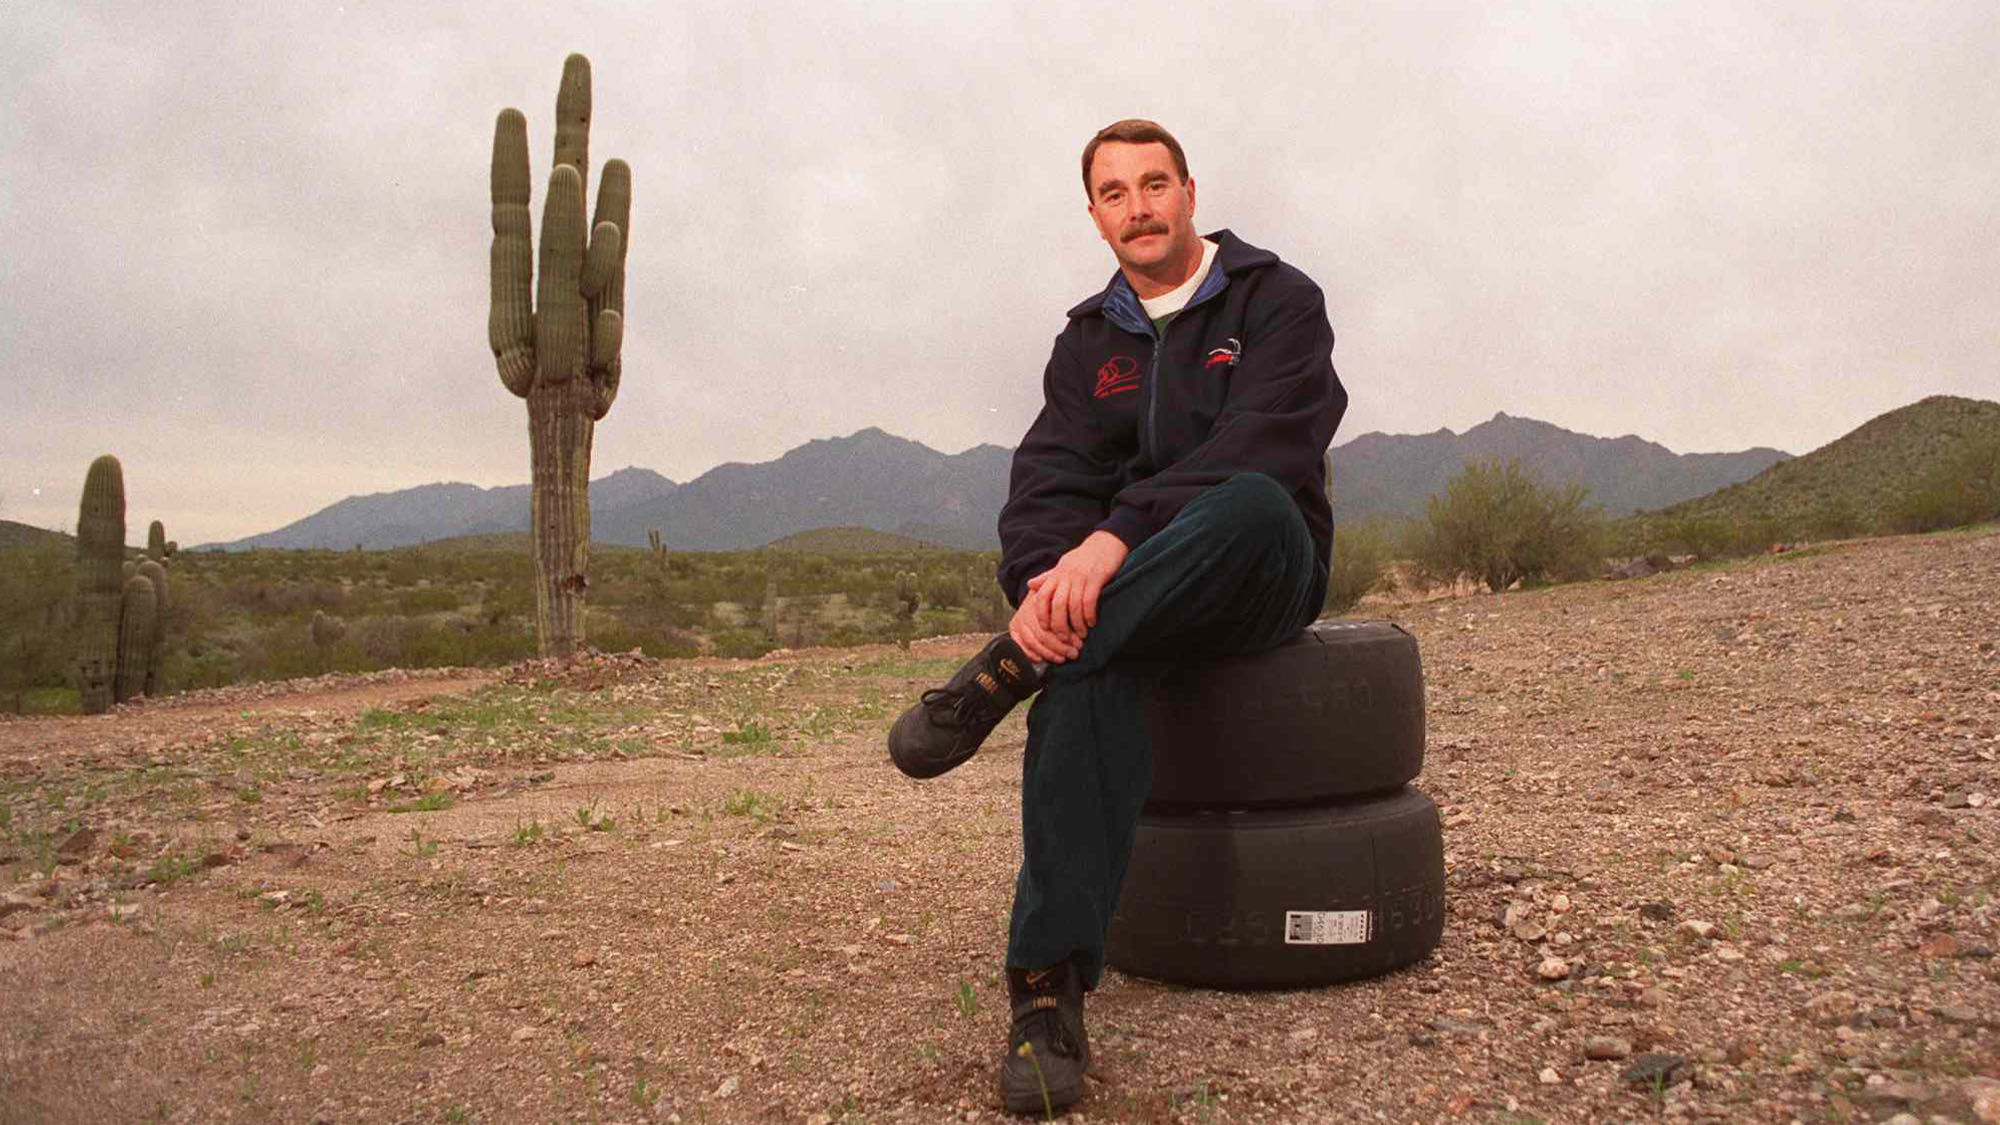 Nigel Mansell Formula One Racing Champion Now Indy Driver Sitting In Arizona Desert February 1993- (Photo By Paul Harris/Getty Images)